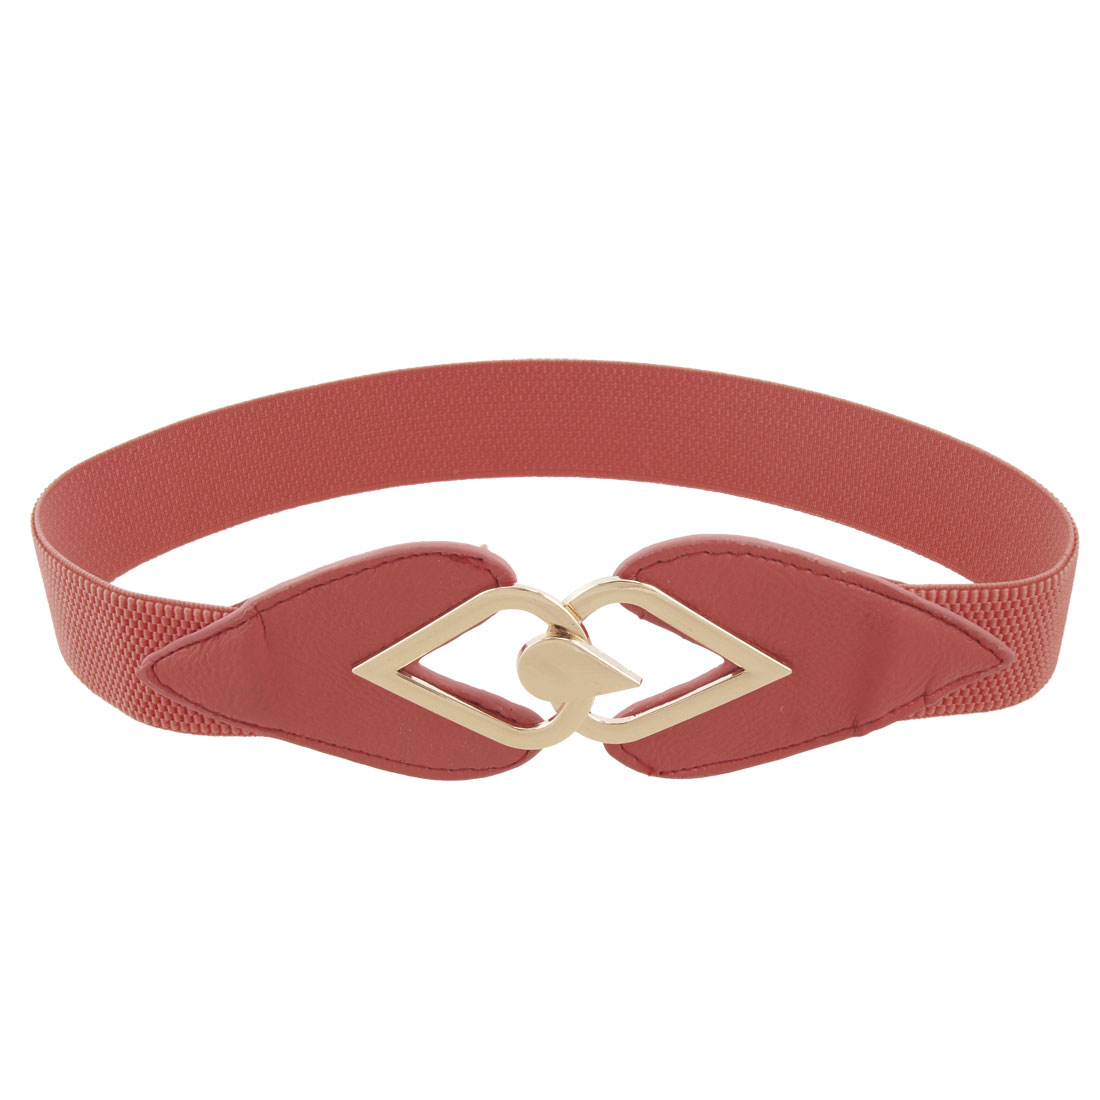 Woman Raindrop Shaped Metal Buckle Watermelon Red Stretch Cinch Belt